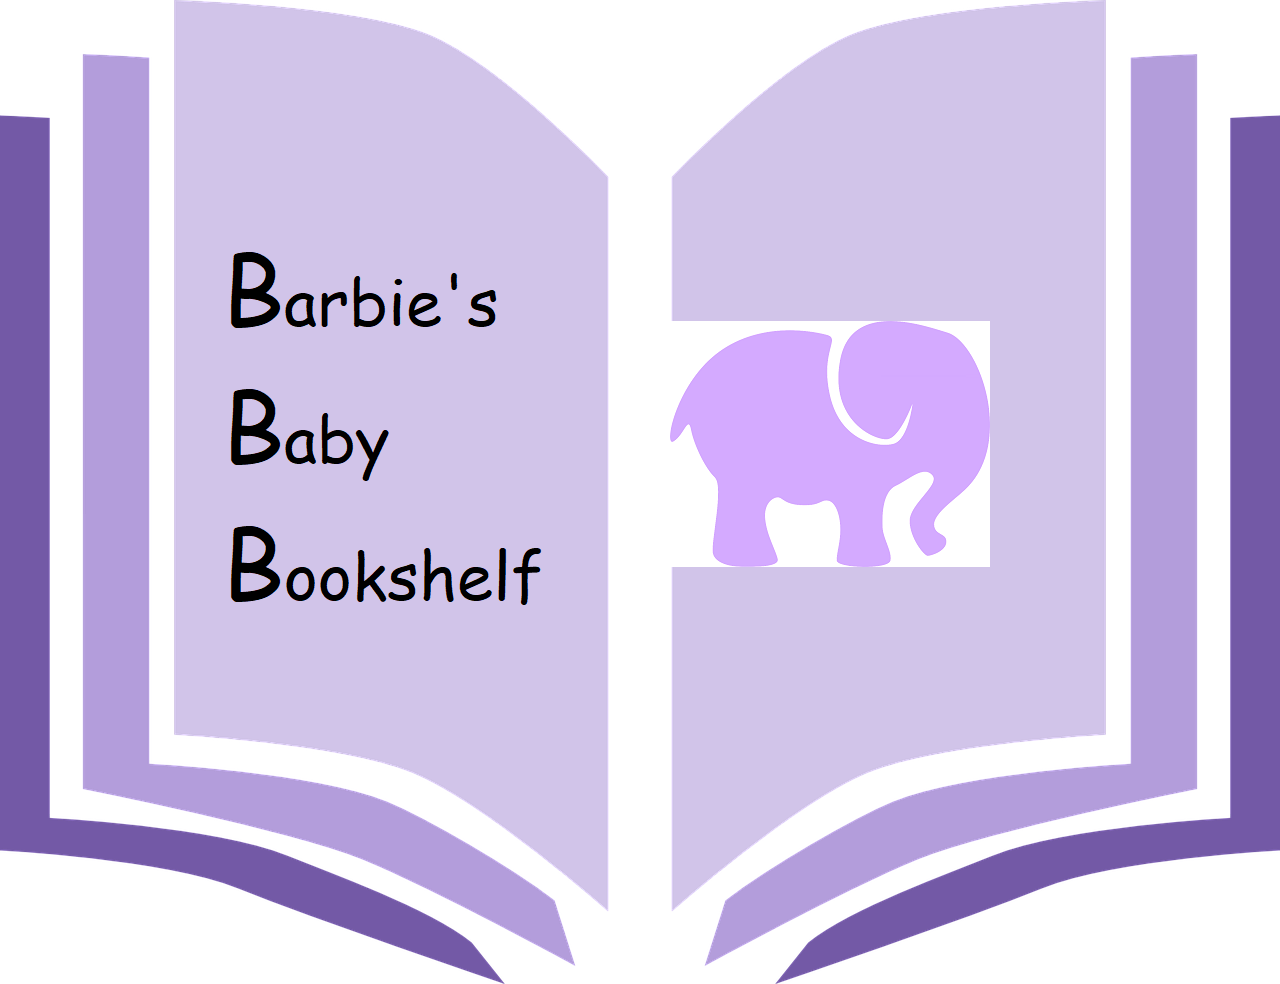 Barbie's Baby Bookshelf